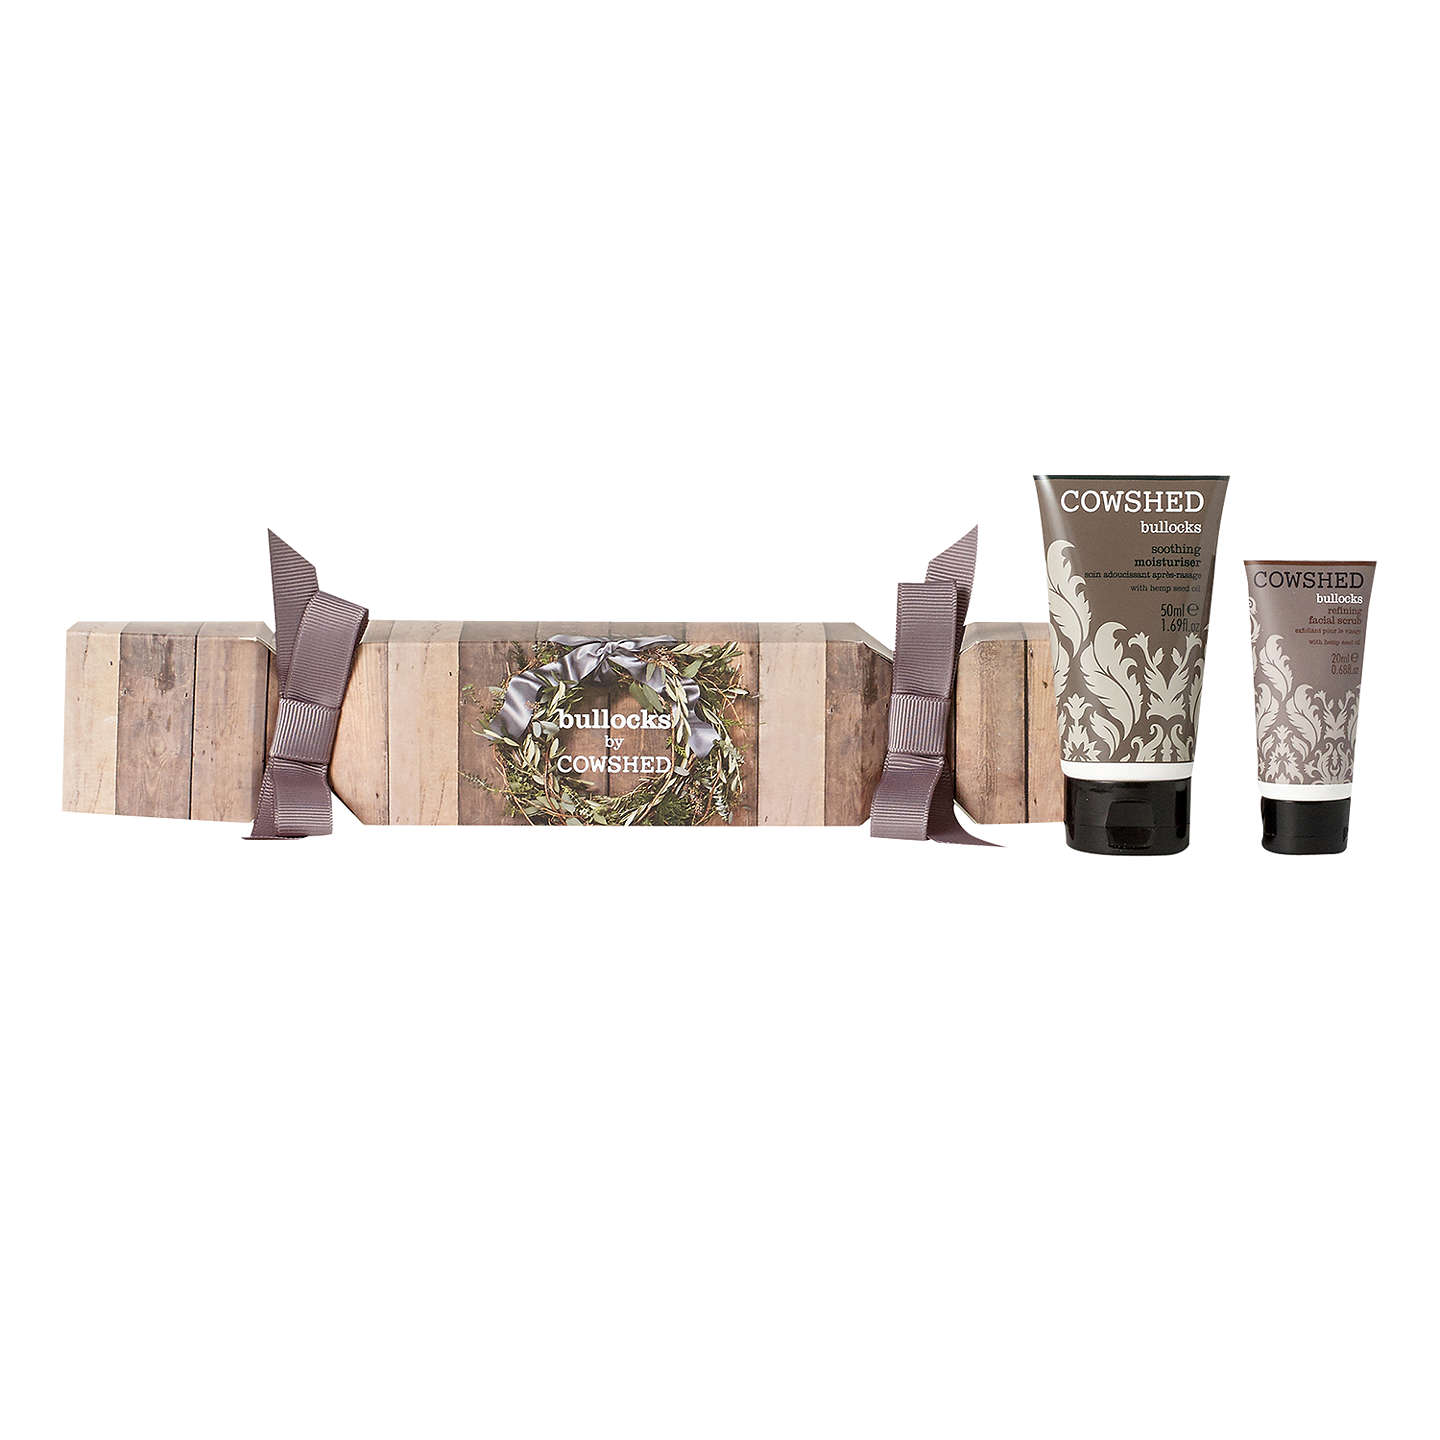 BuyCowshed Bullocks Wreath Cracker Skin Care Kit Online at johnlewis.com